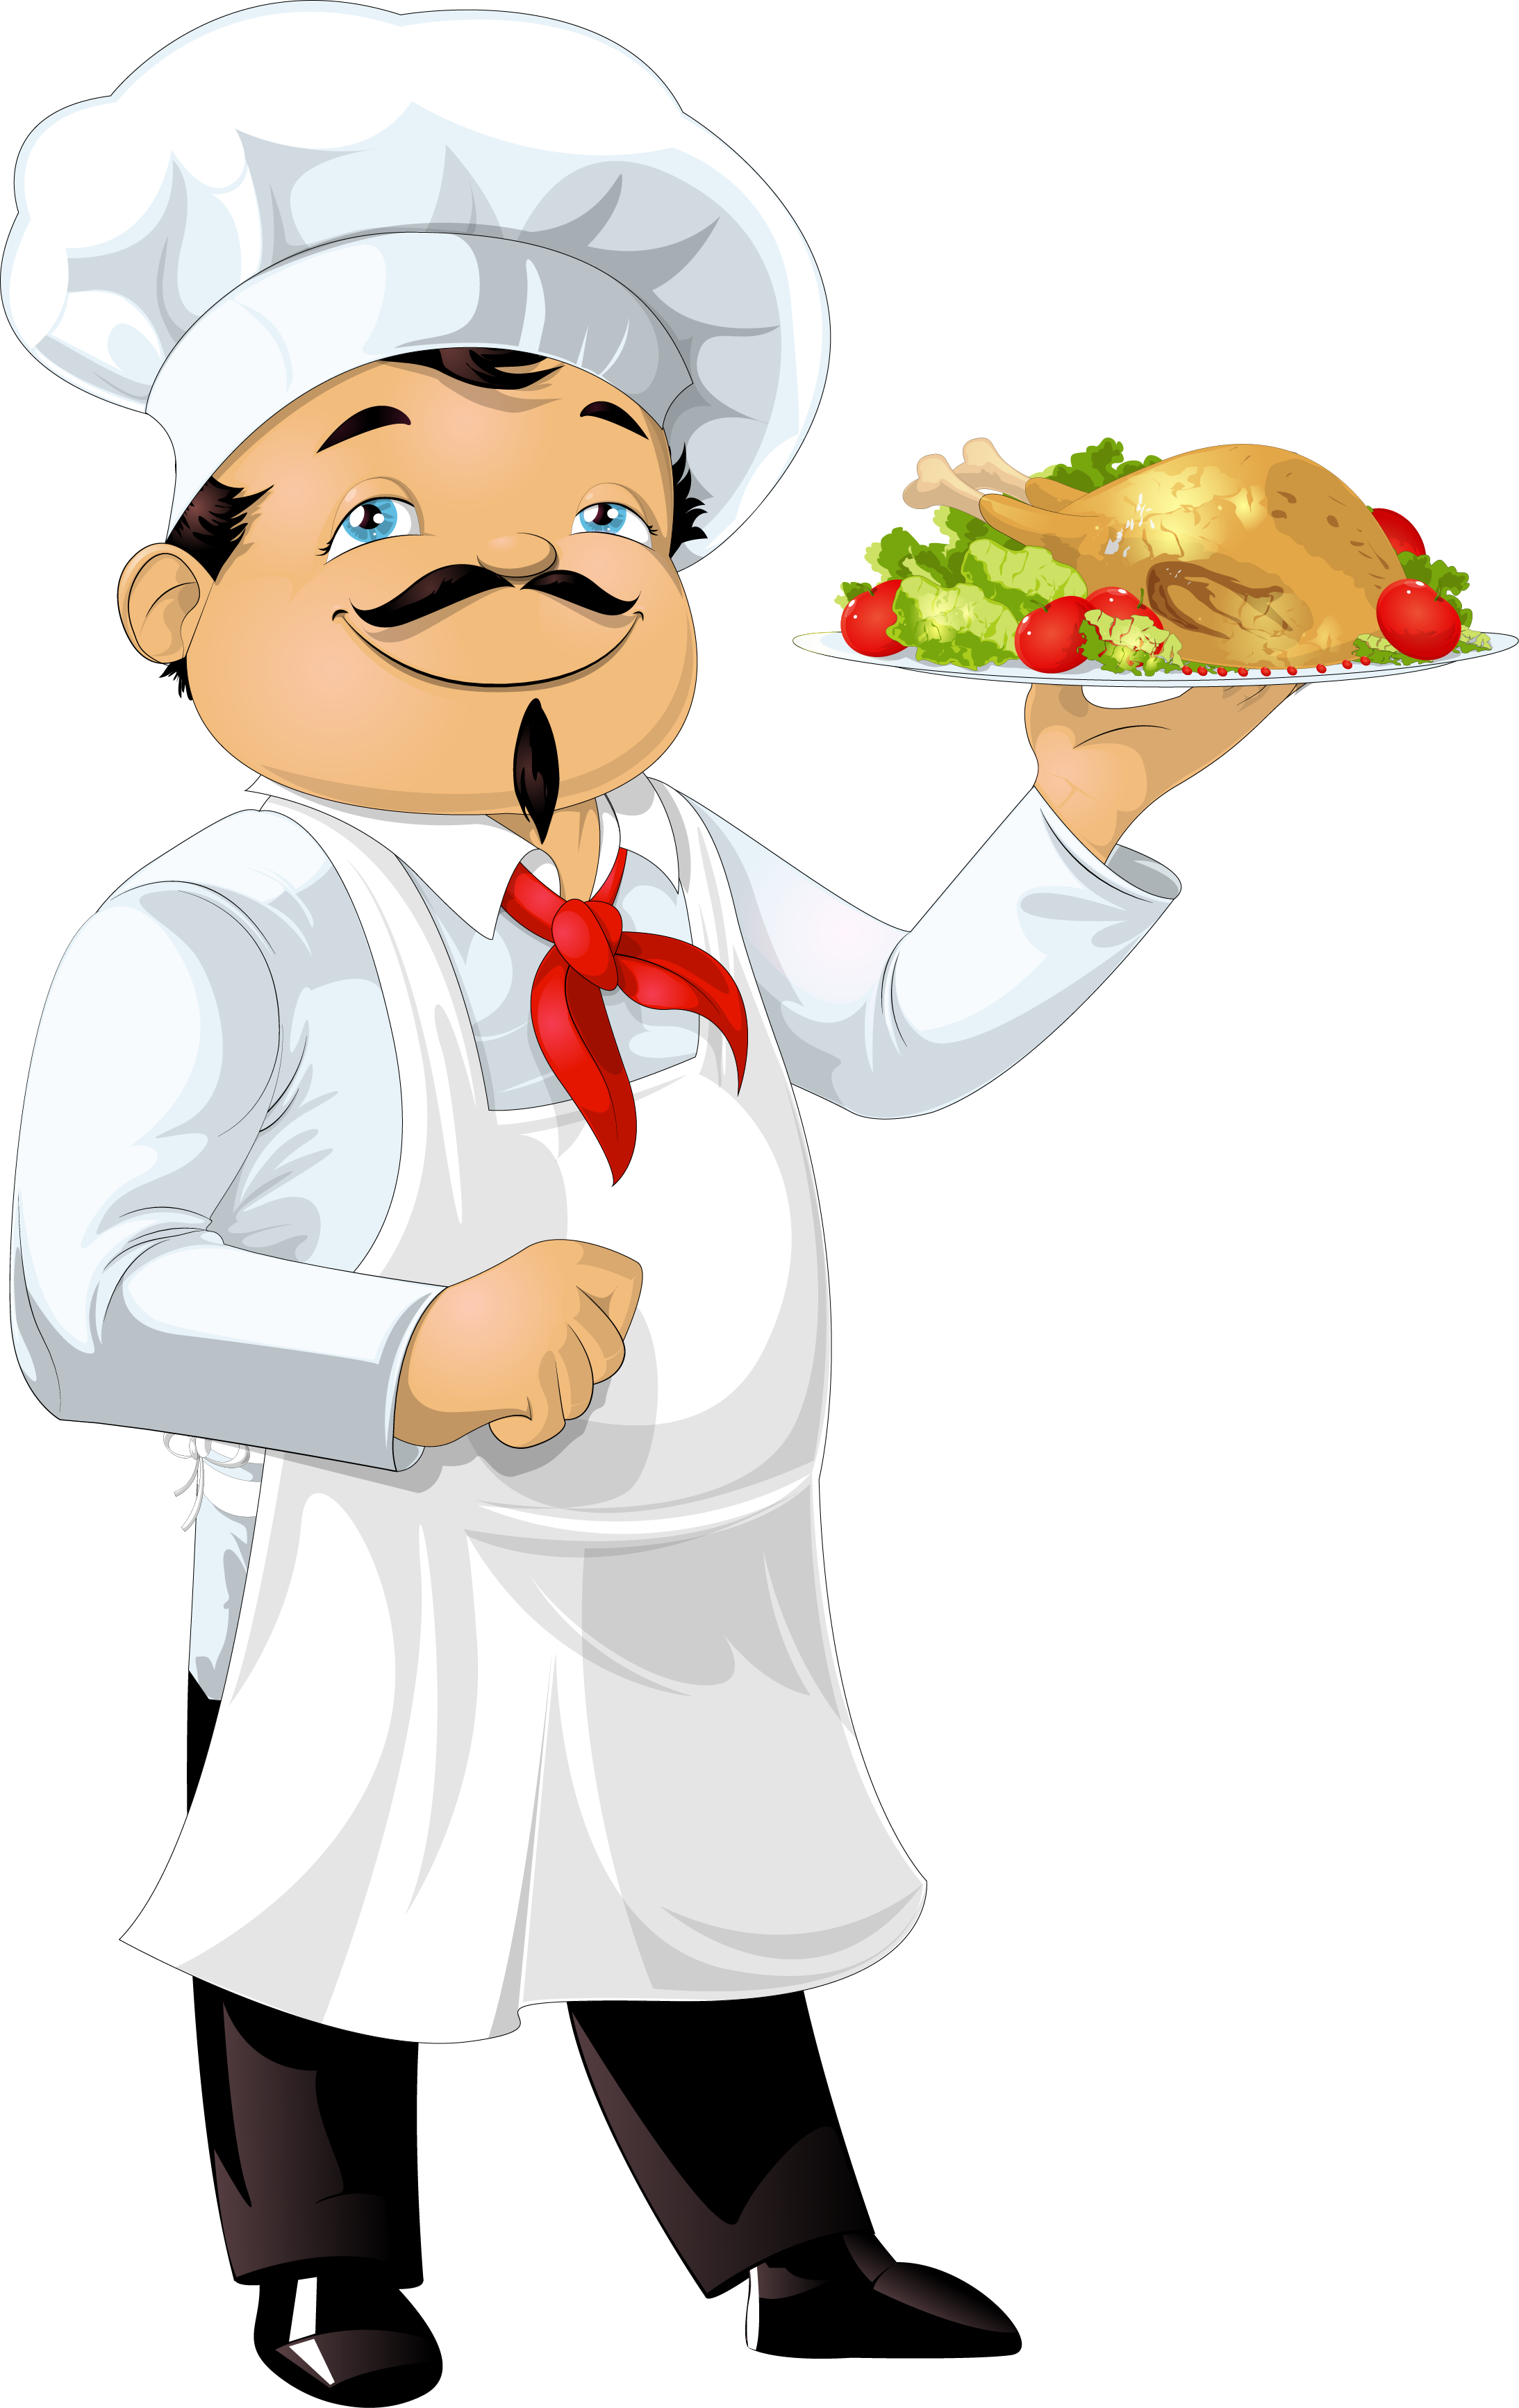 Cuisine clip art transprent. Cooking clipart chef indian